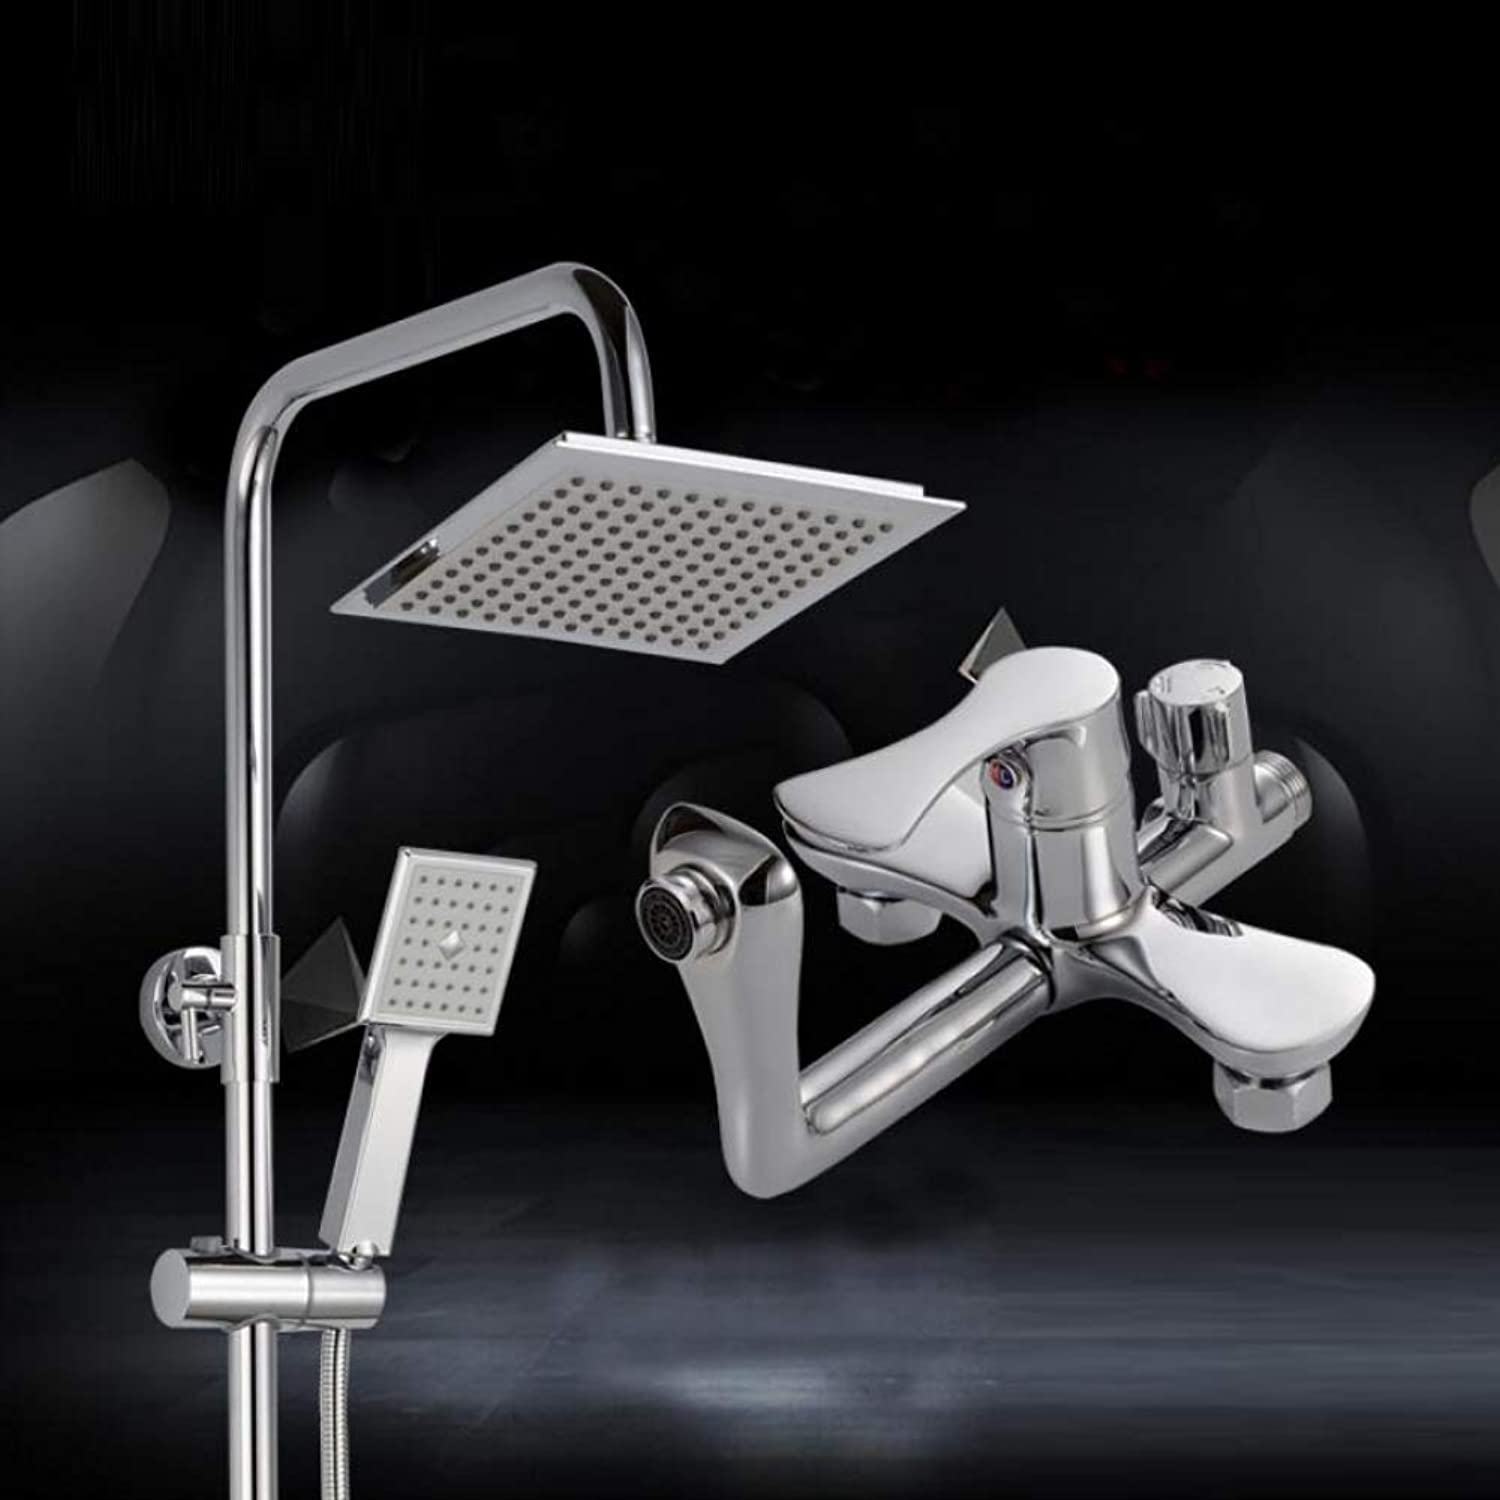 LWUDI Shower Systems with Rain Handheld, Bathroom take a shower Set,can Lift Shower all bronze Faucet Quartet Third gear Large shower Showerheads,handheld shower head with filter